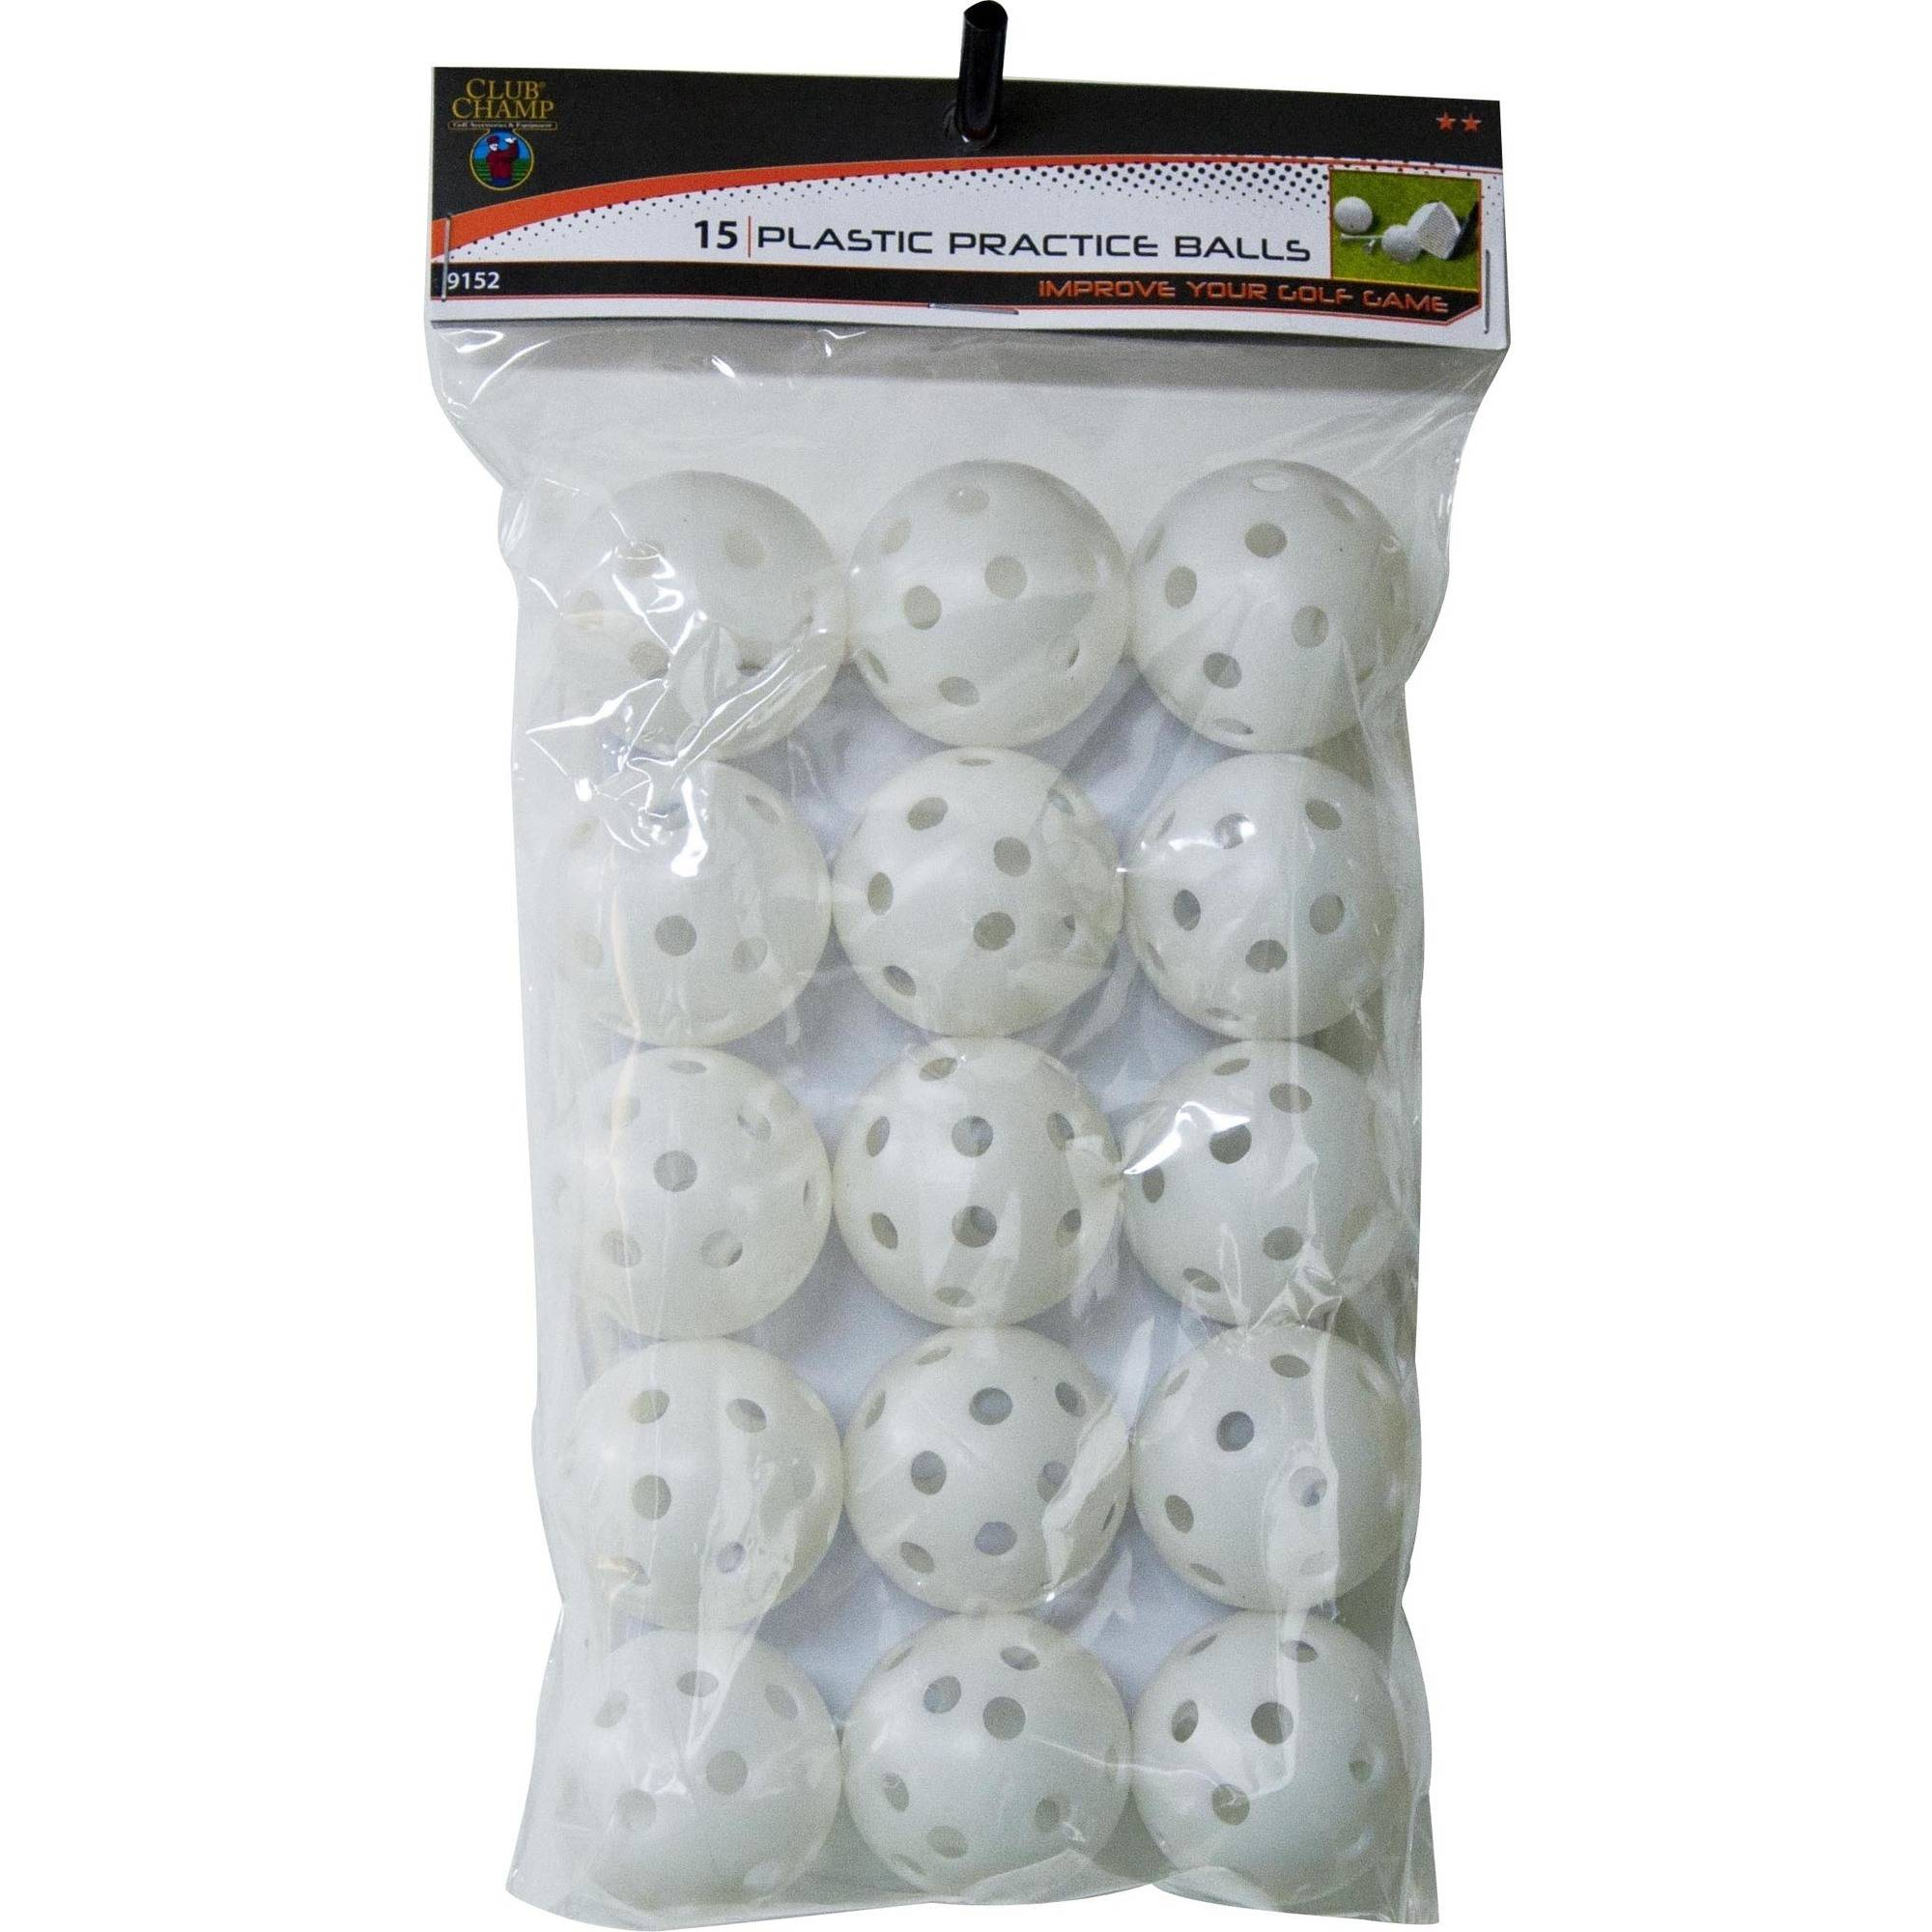 Club Champ 15pk Practice Balls With Holes White